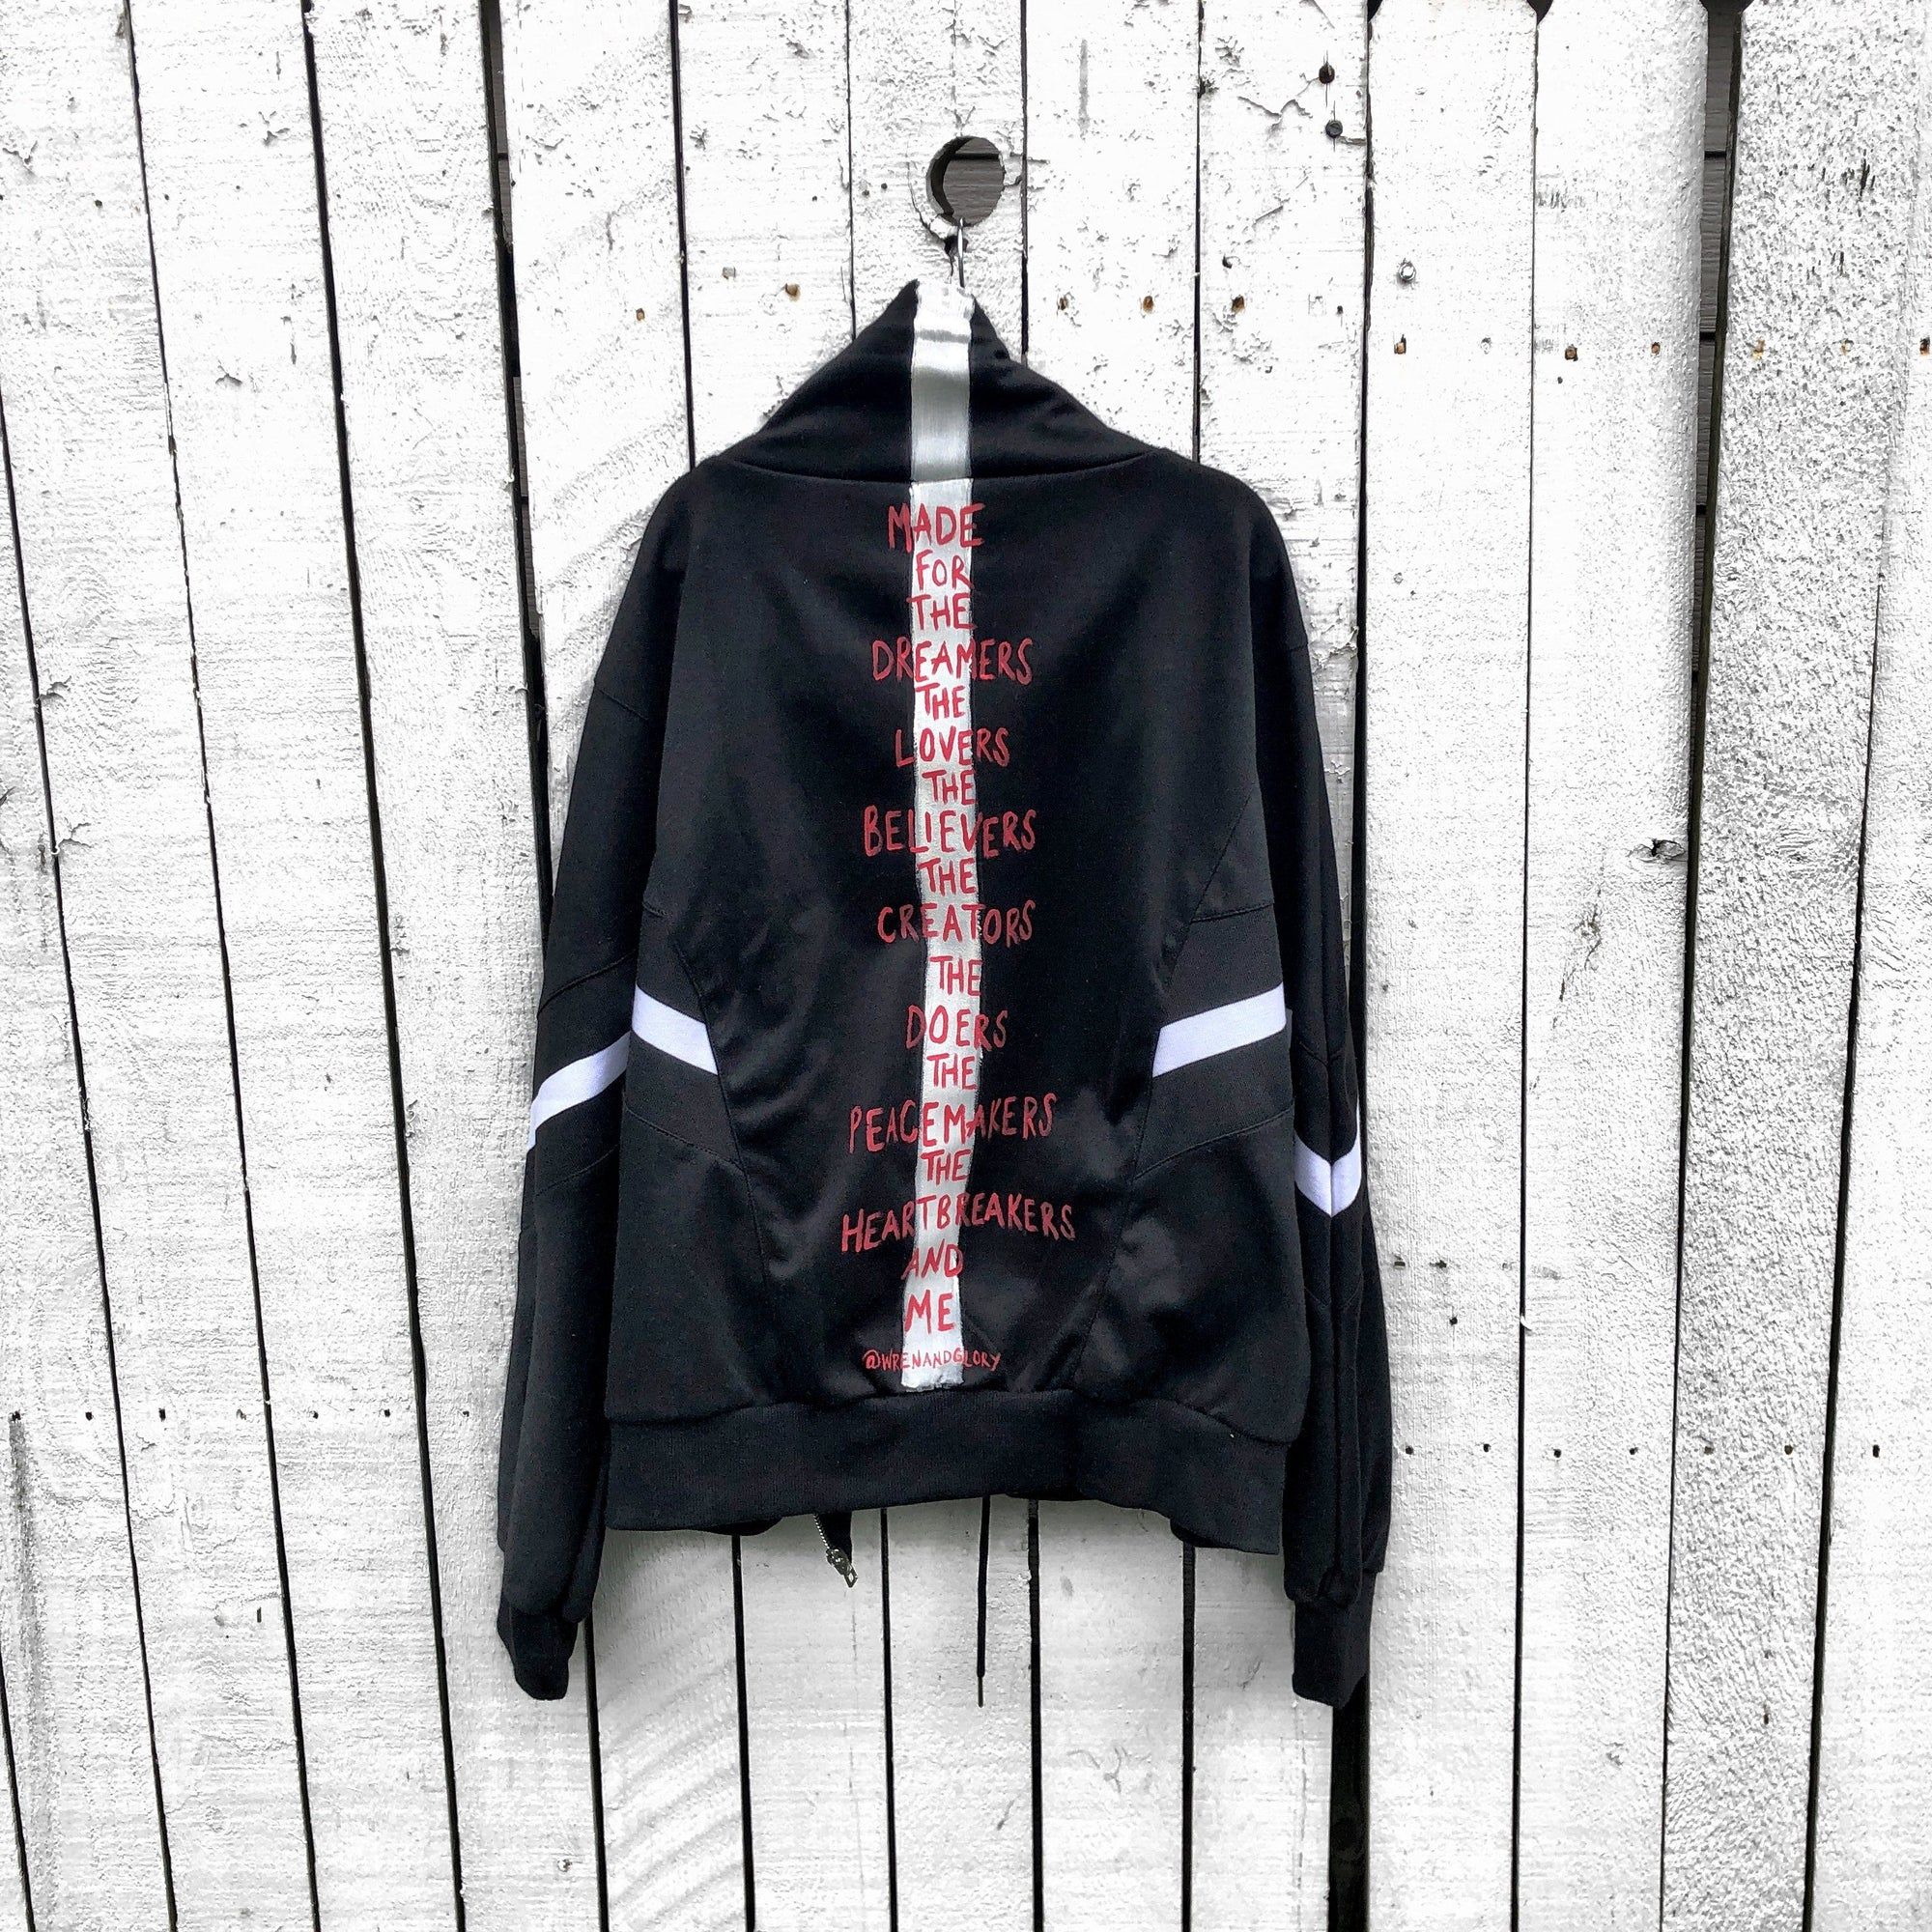 'MADE FOR ME' SWEAT JACKET